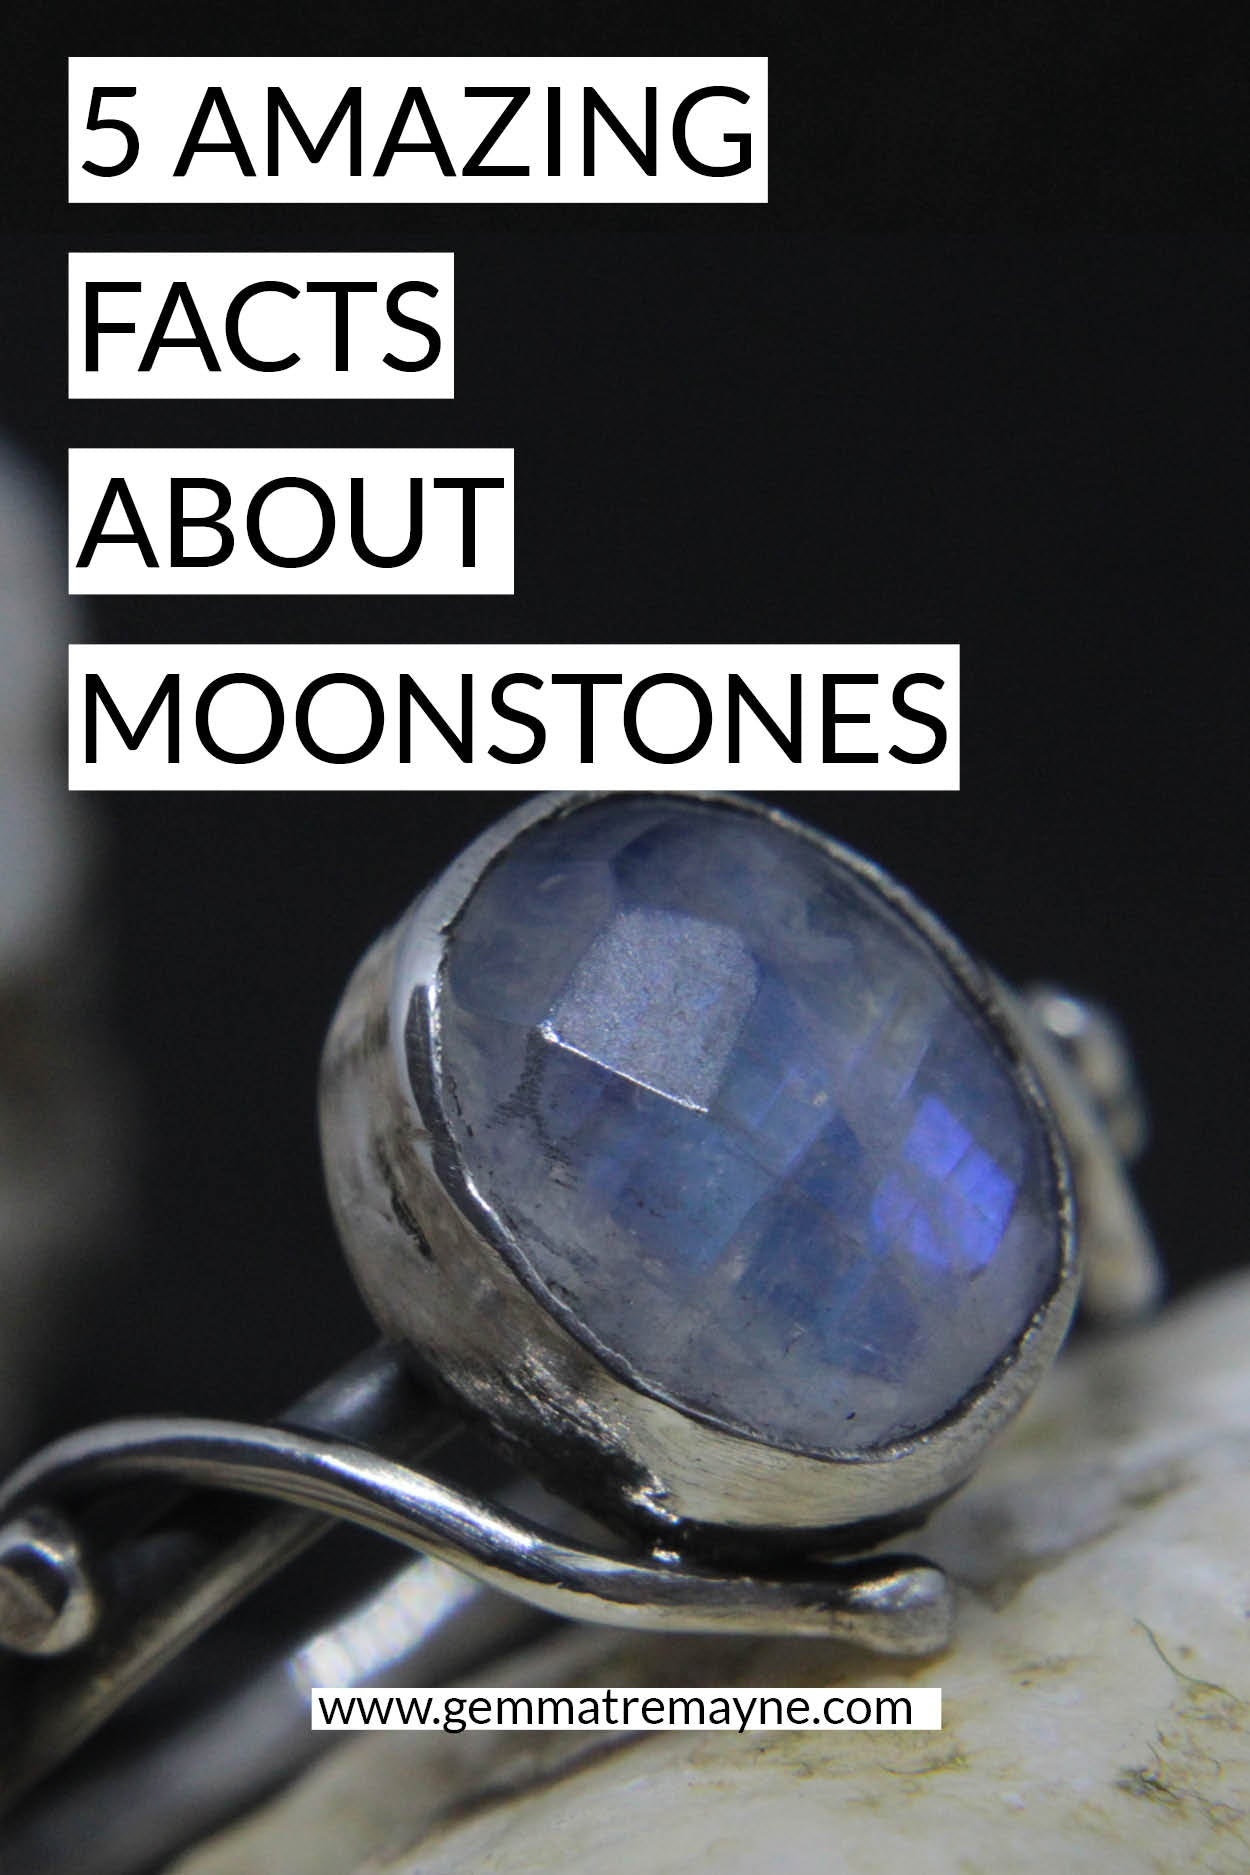 5 Amazing Facts About Moonstones